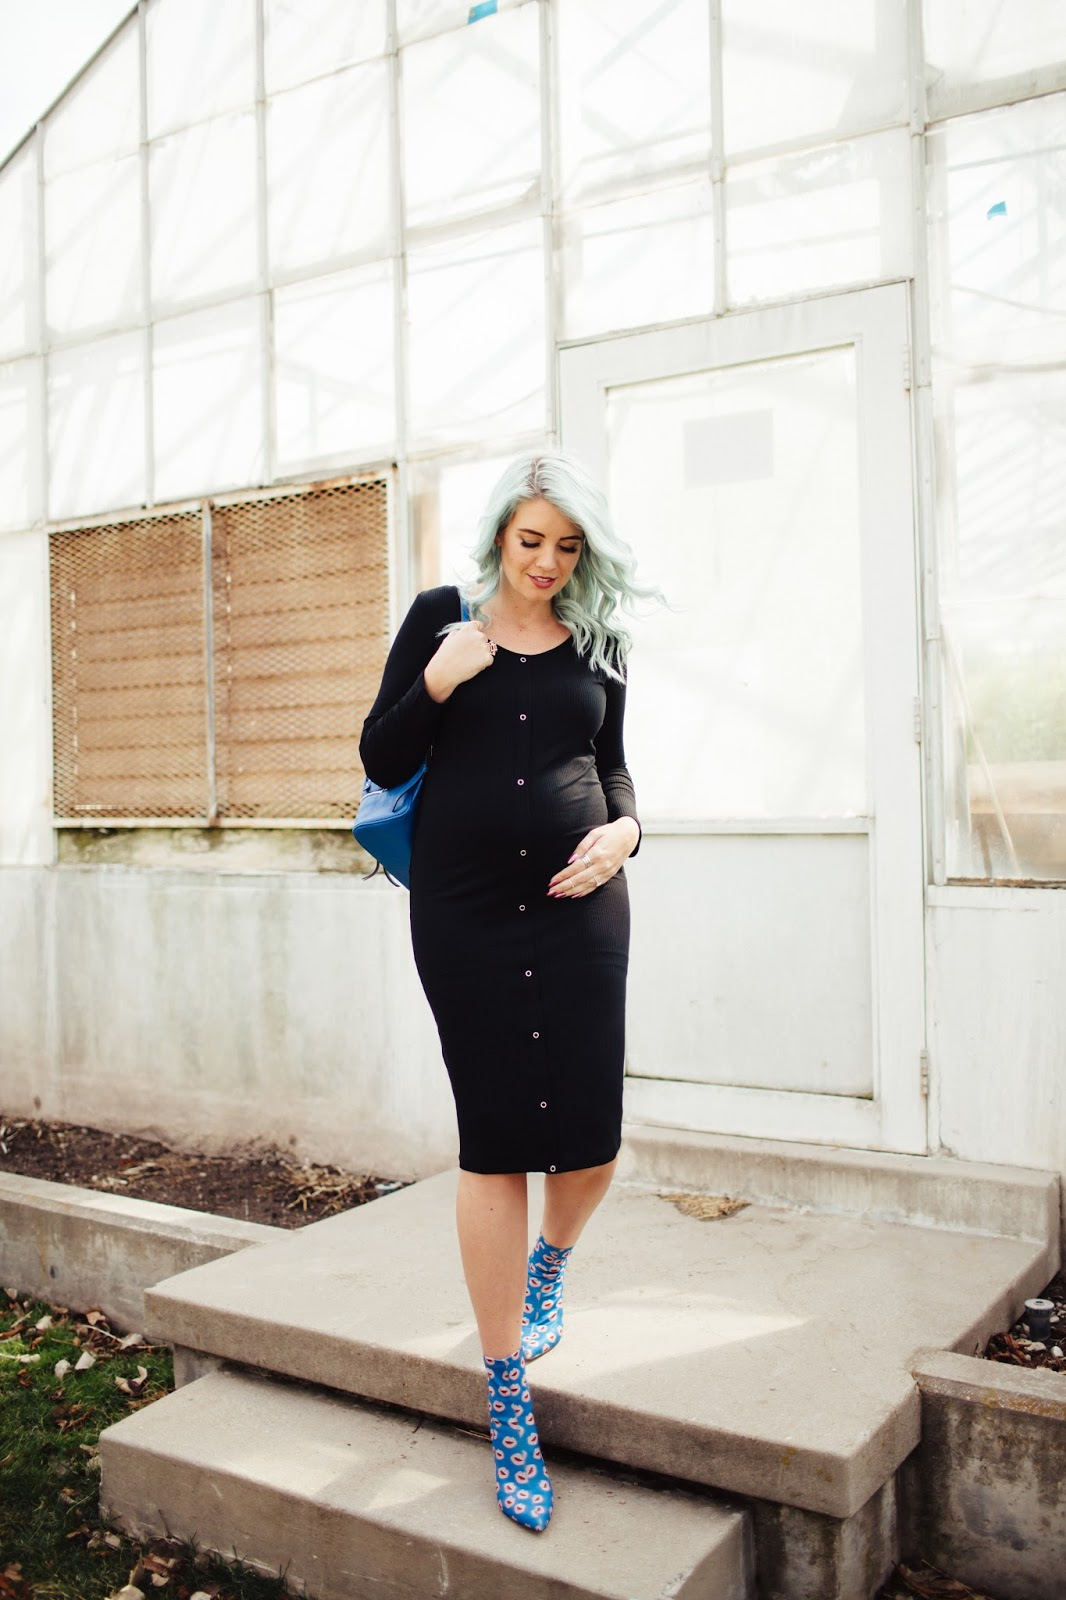 Pregnant Dress, Pregnant Style, 22 Weeks Pregnant